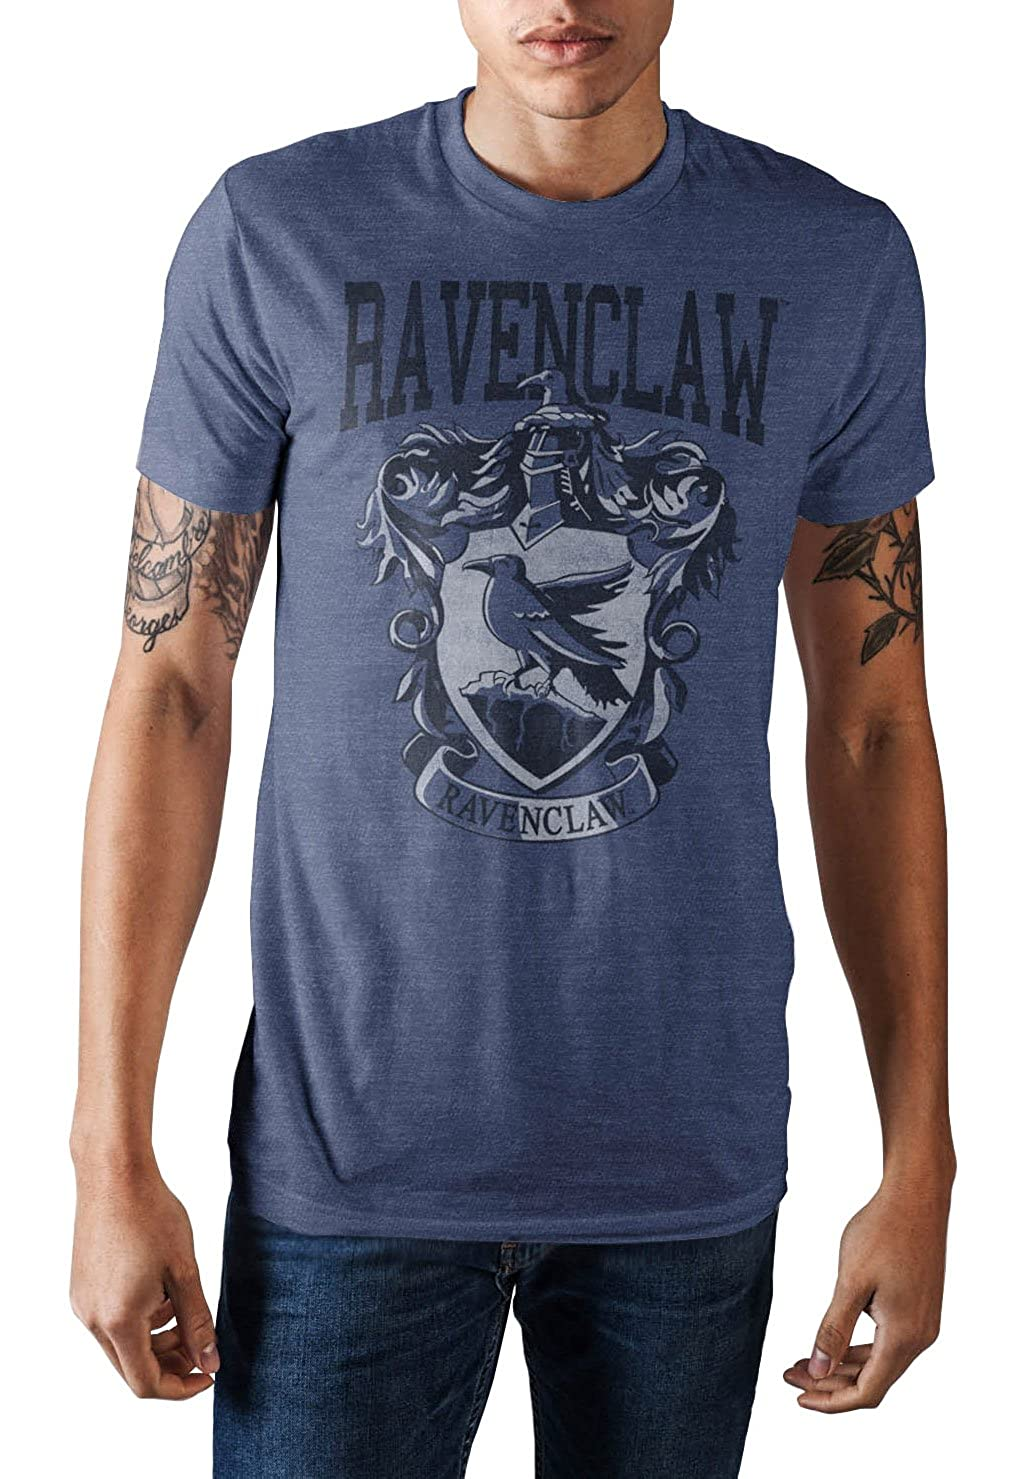 94cea96c9 54% Cotton 46% Polyester Officially Licensed Harry Potter Product by  Bioworld Listed in Adult Men's Sizes Hight Quality Front Graphics Featuring  the ...